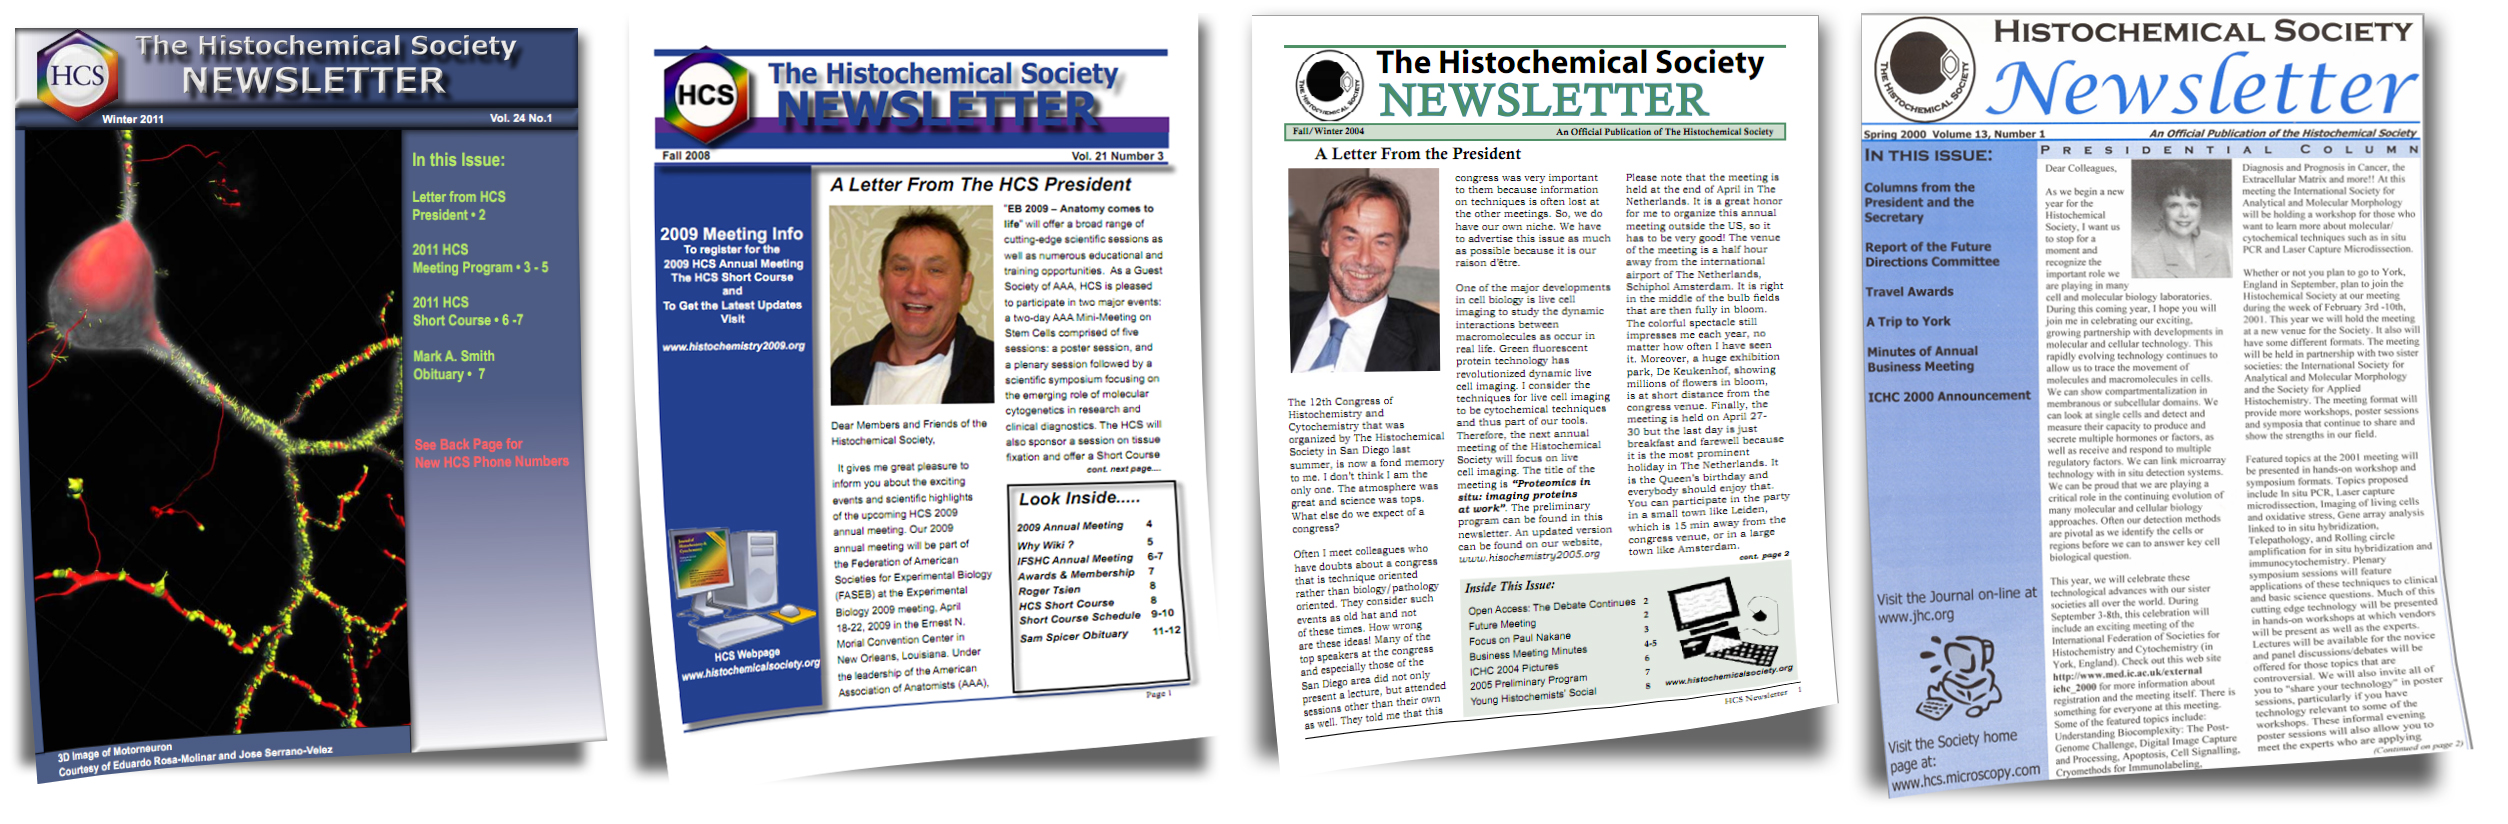 Histochemical Society Newsletters